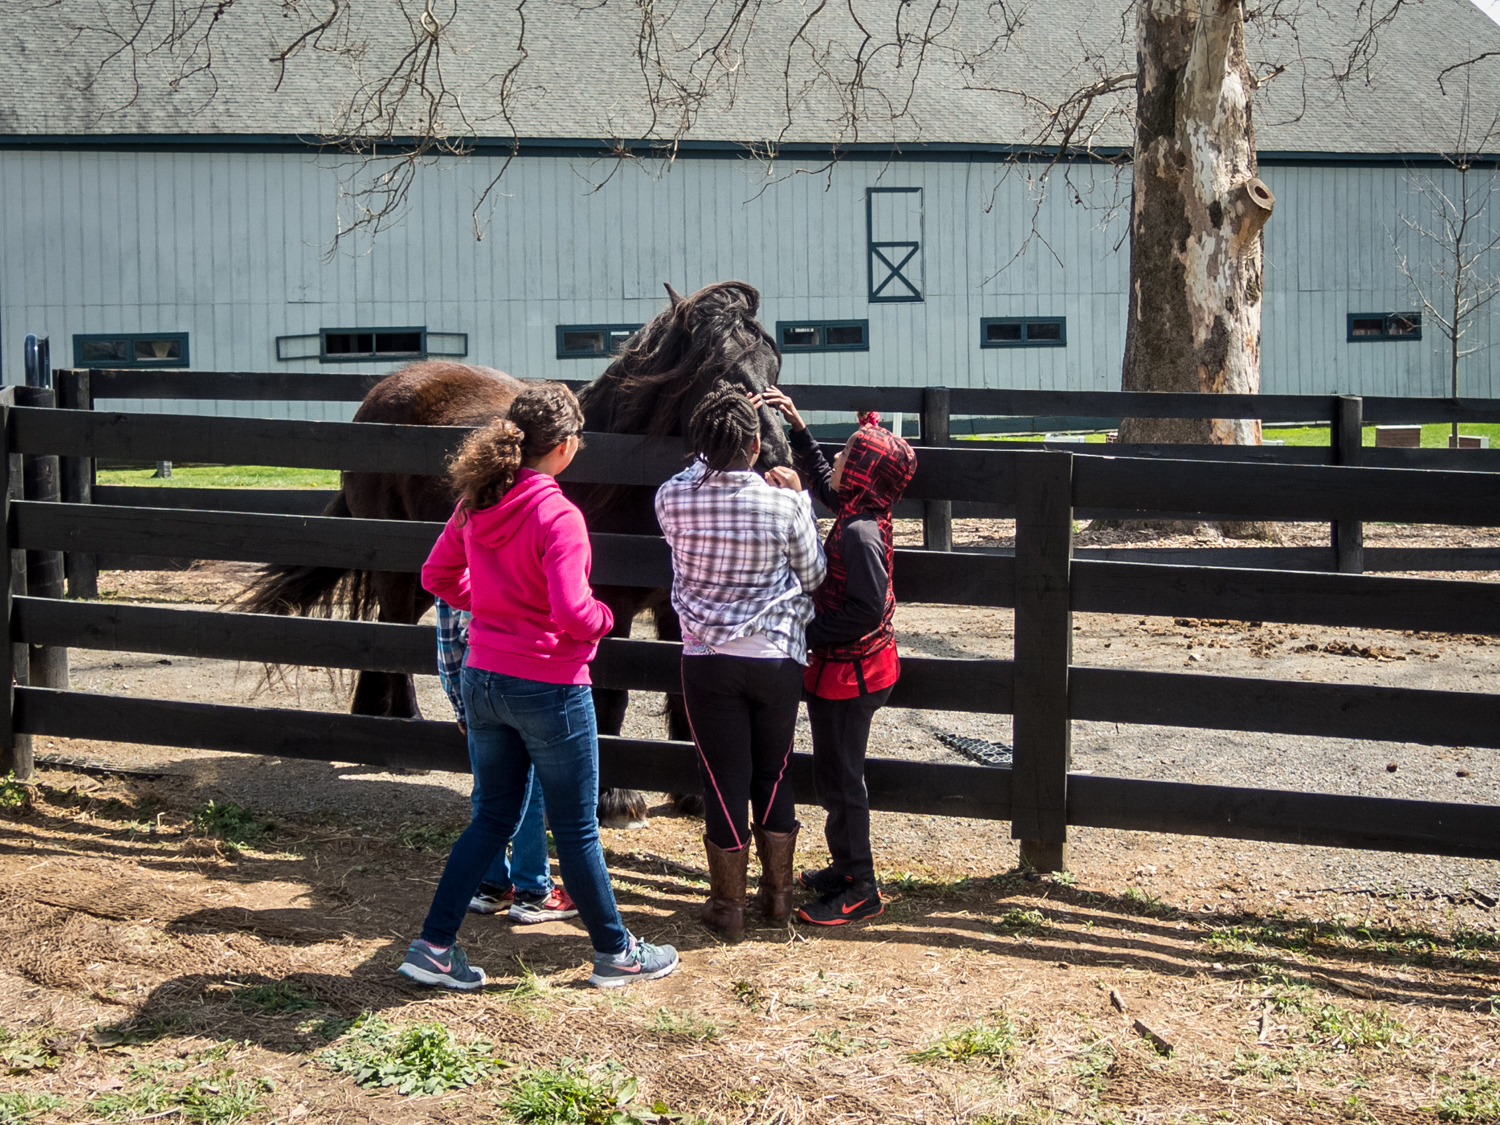 My kids getting up close and personal with one of the many accessible horses. They got 'kisses' from this one!